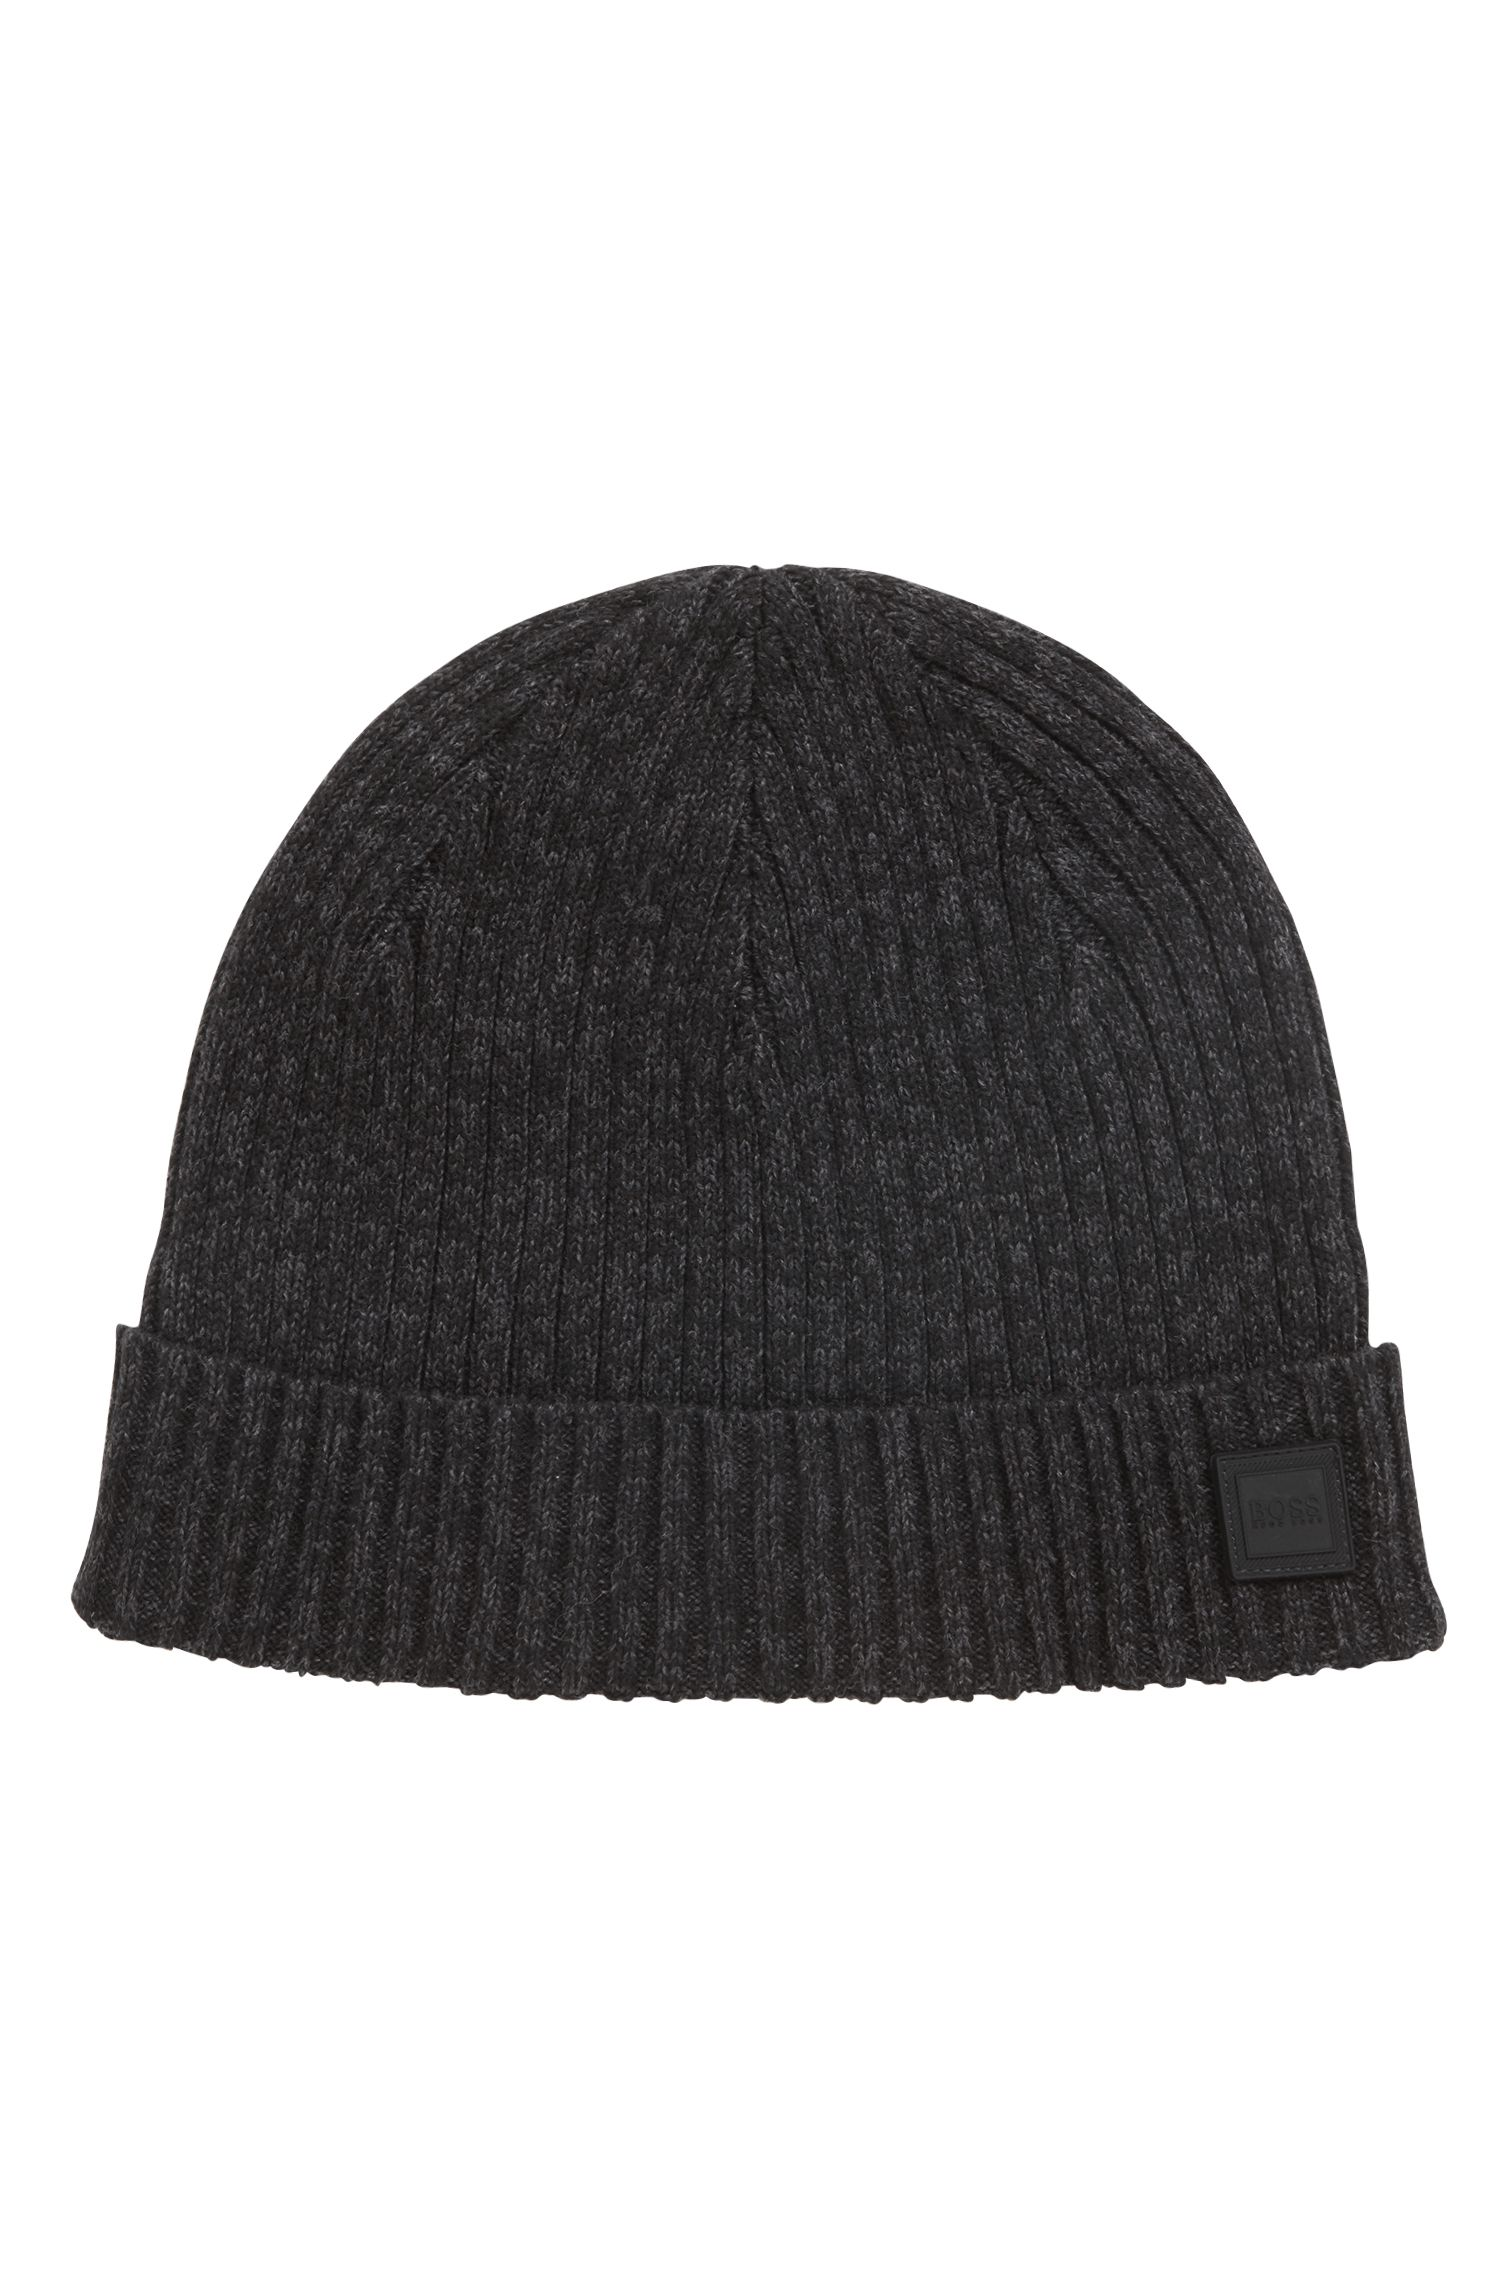 Ribbed beanie hat in a mouliné cotton blend, Black